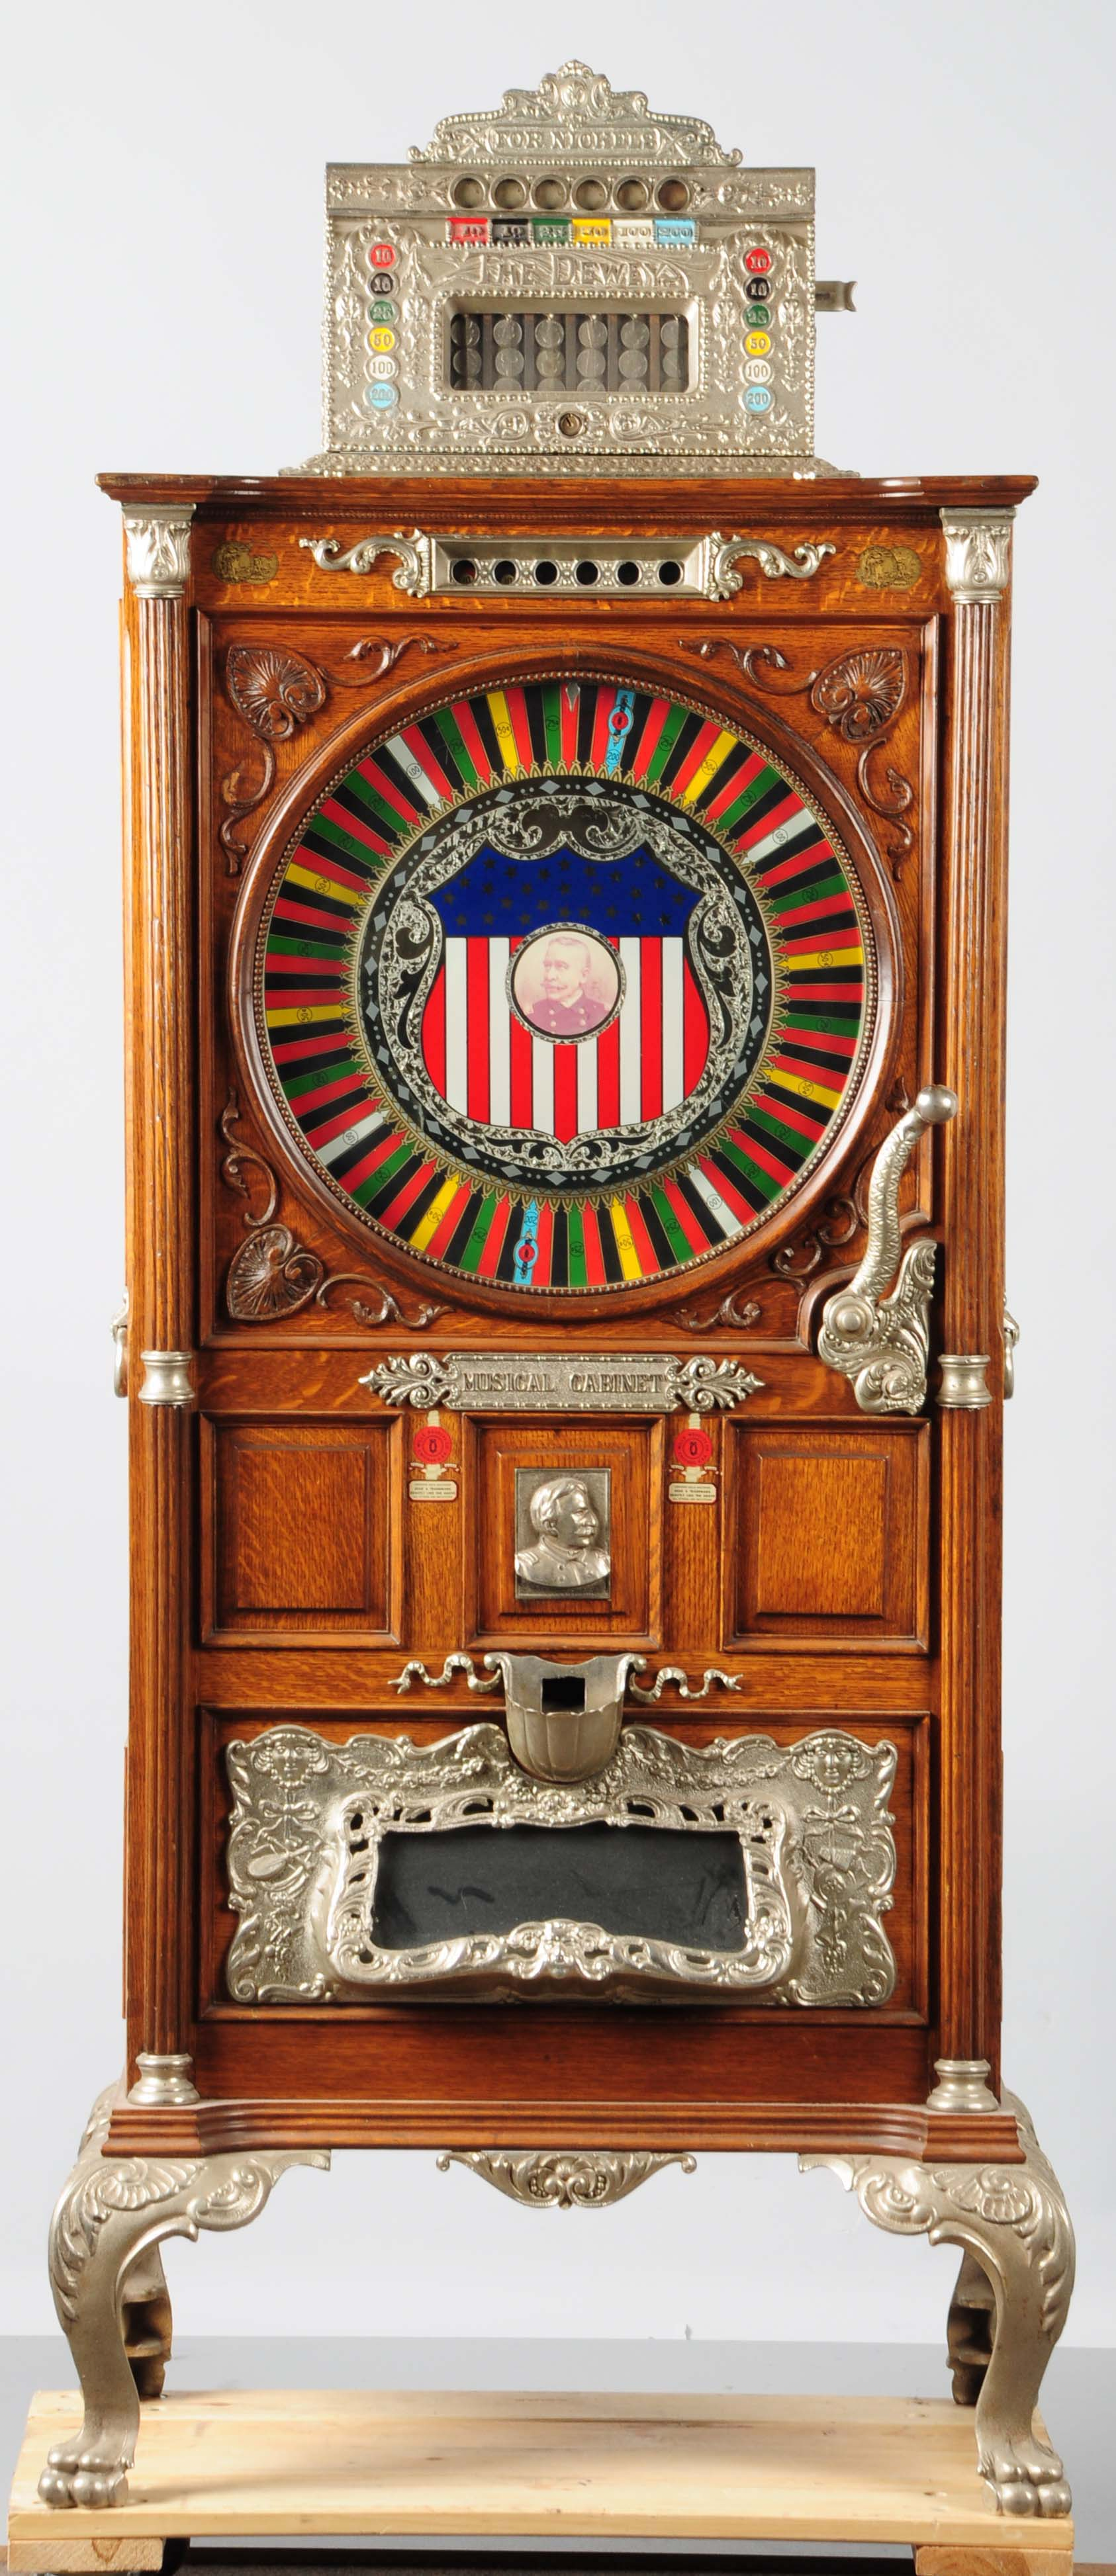 Mills 5-cent Dewey musical upright slot machine, working order with excellent repertoire of tunes. Est. $15,000-$18,000. Morphy Auctions image.